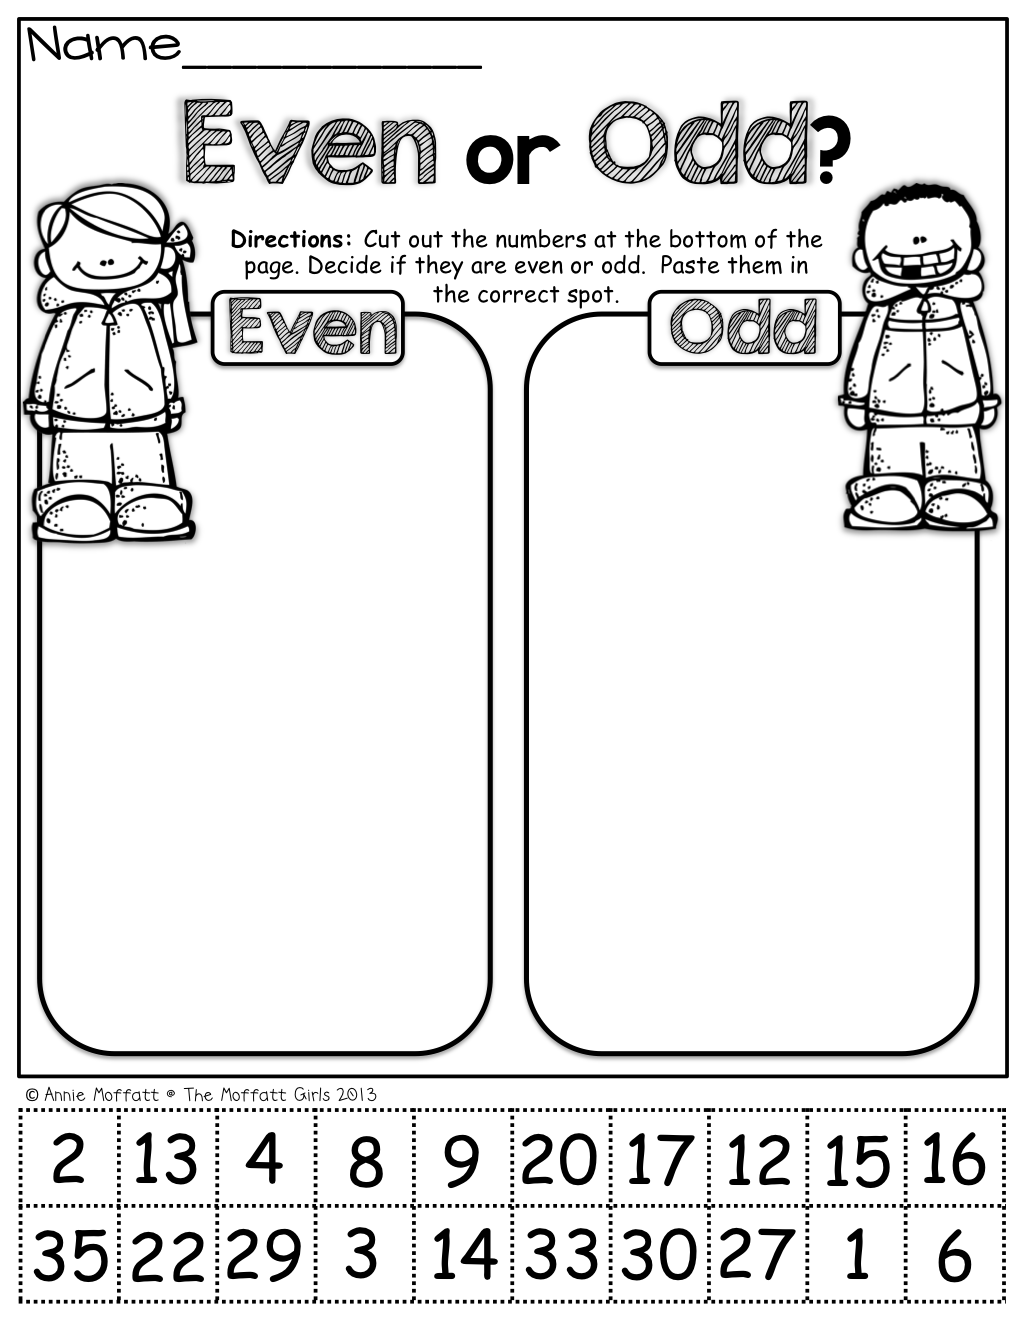 worksheet Even And Odd Worksheets For 2nd Grade even or odd cut and paste math pinterest school worksheets2nd grade